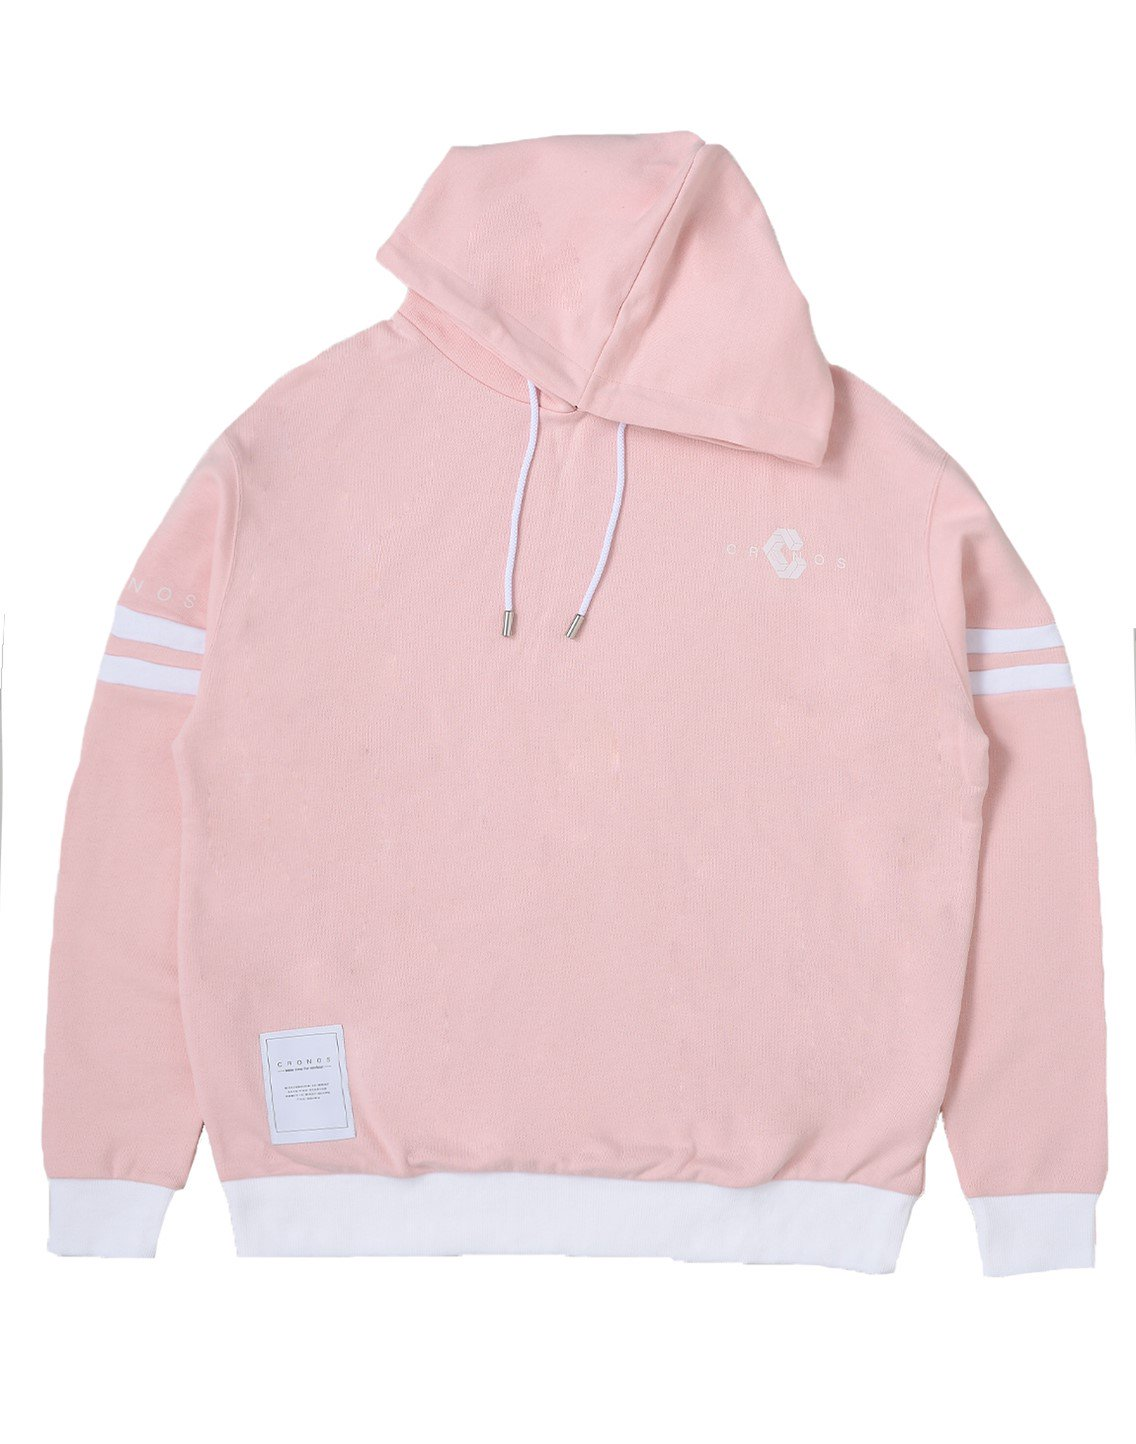 <img class='new_mark_img1' src='https://img.shop-pro.jp/img/new/icons55.gif' style='border:none;display:inline;margin:0px;padding:0px;width:auto;' />CRONOS ARM TWO LINE HOODY【PINK×WHITE】